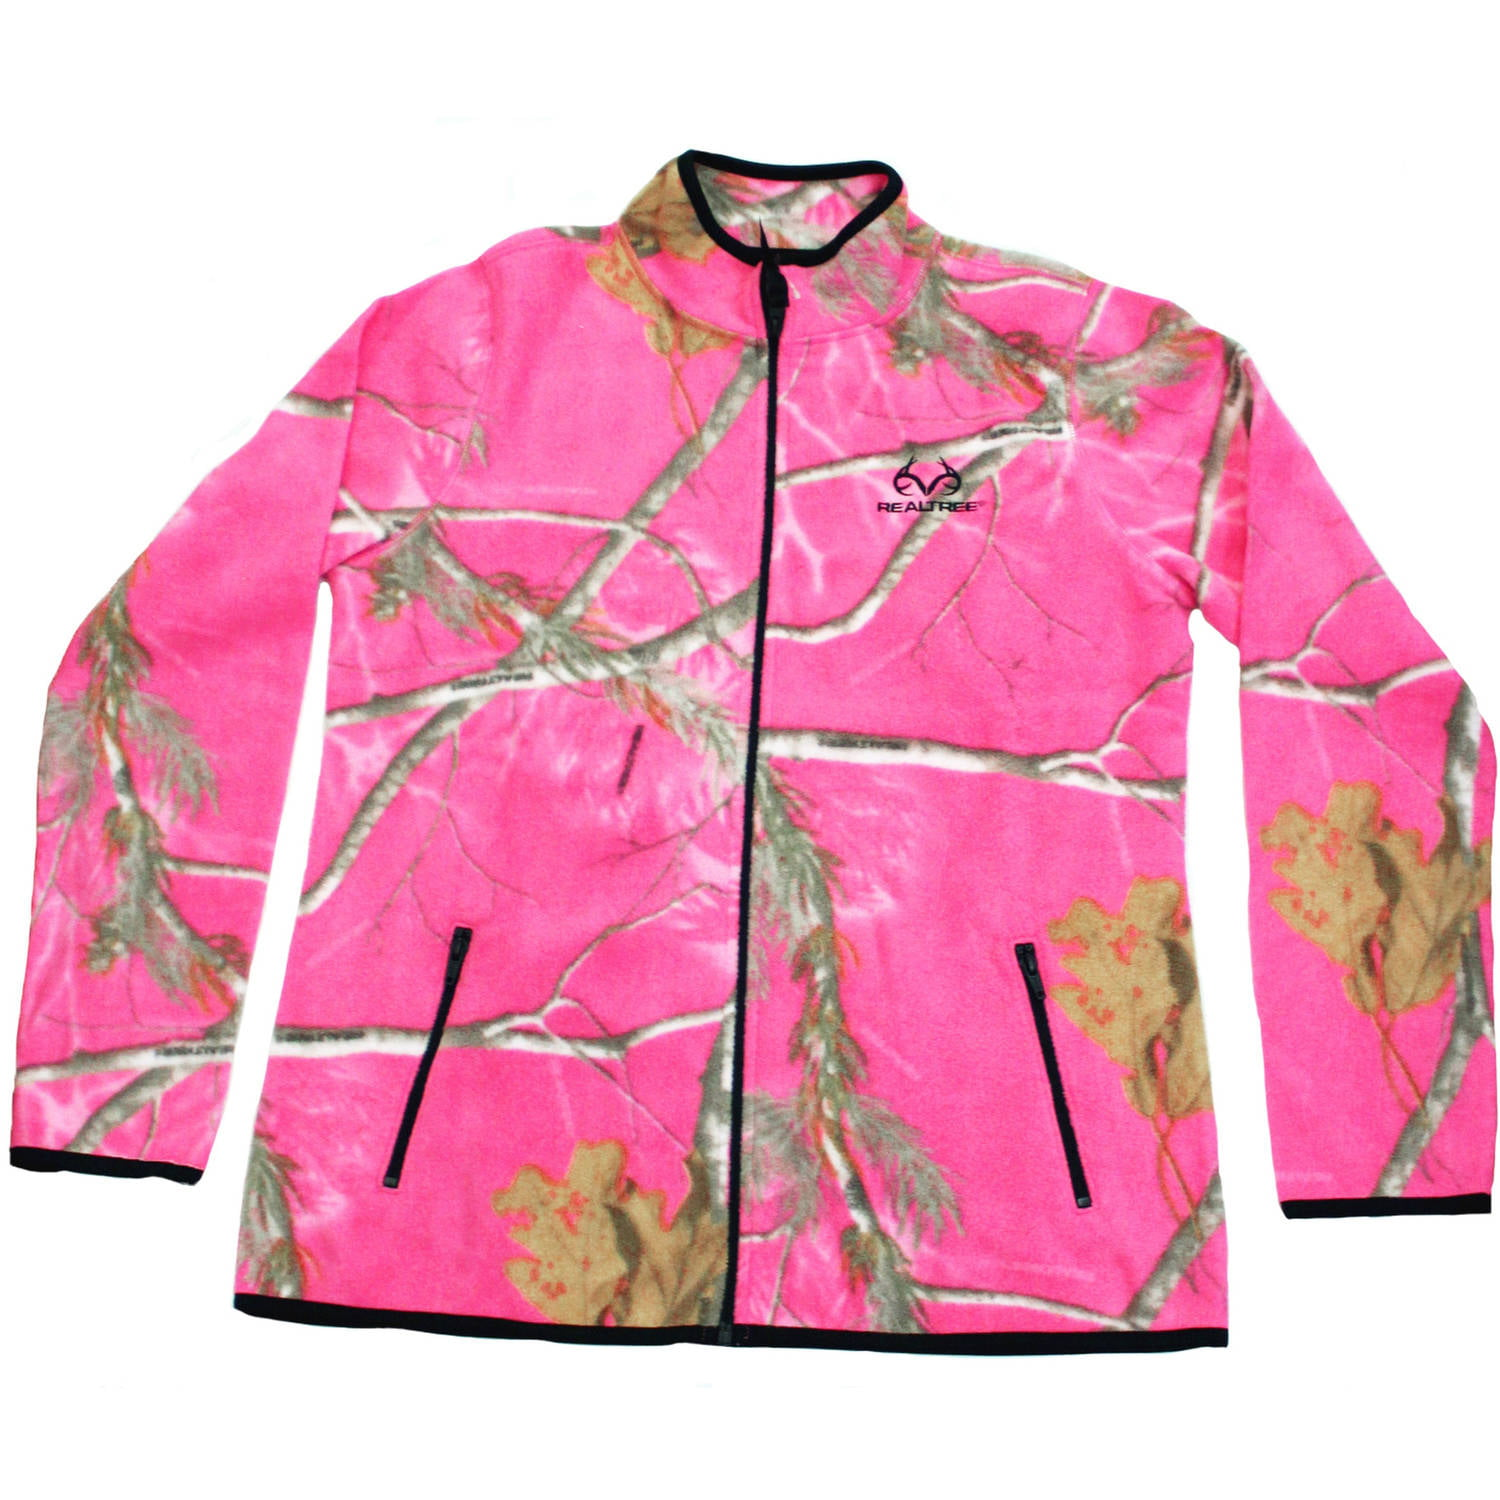 Mossy Oak Women's Fleece Camo Full Zip Jacket, MO Breakup Country by Generic